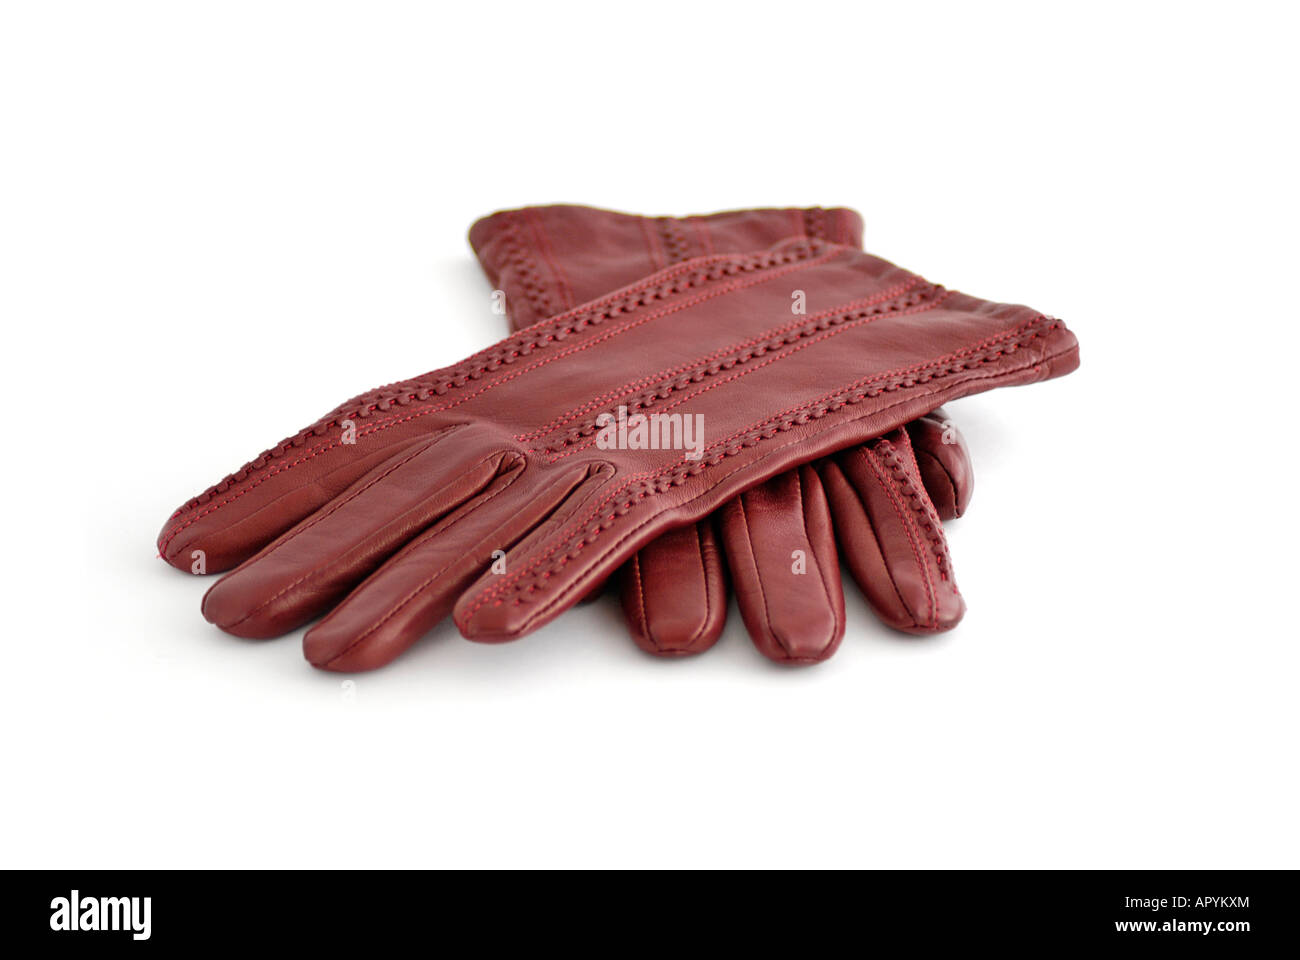 Pair of Red Leather Gloves - Stock Image